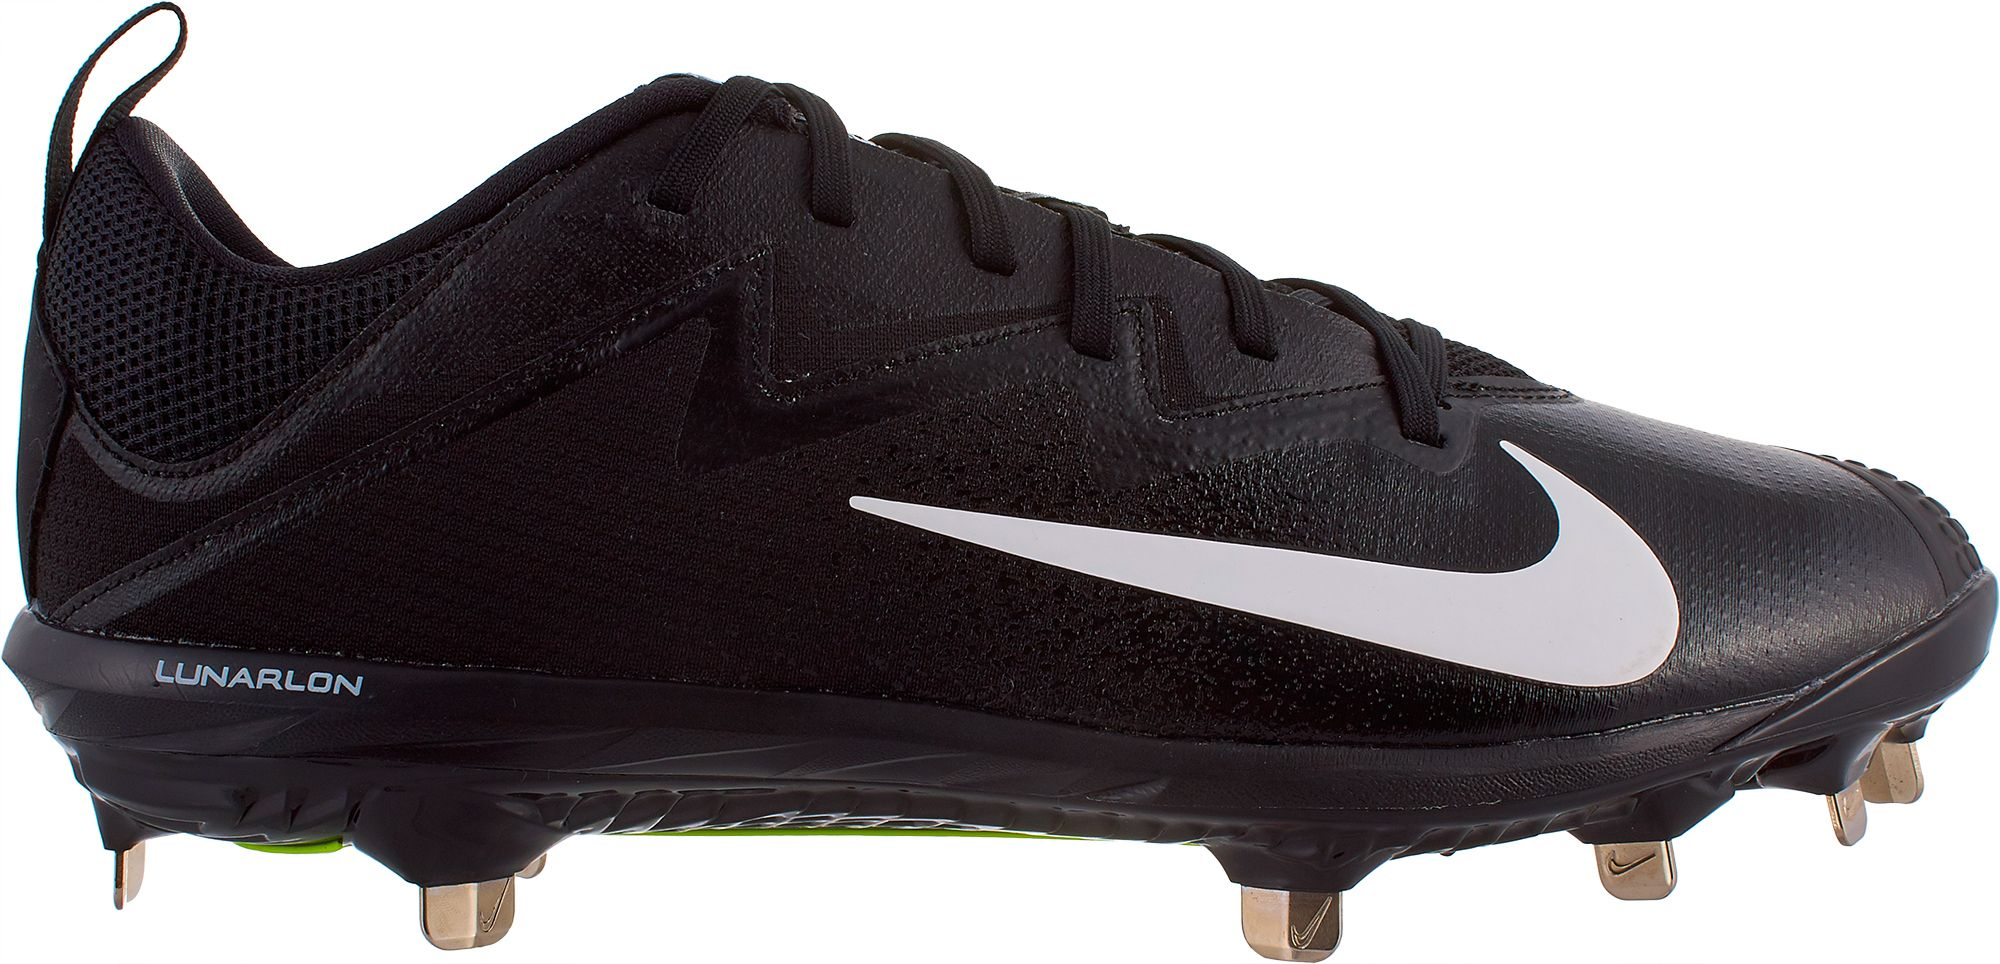 Nike Men's Vapor Ultrafly Pro Metal Baseball Cleats | DICK'S Sporting Goods